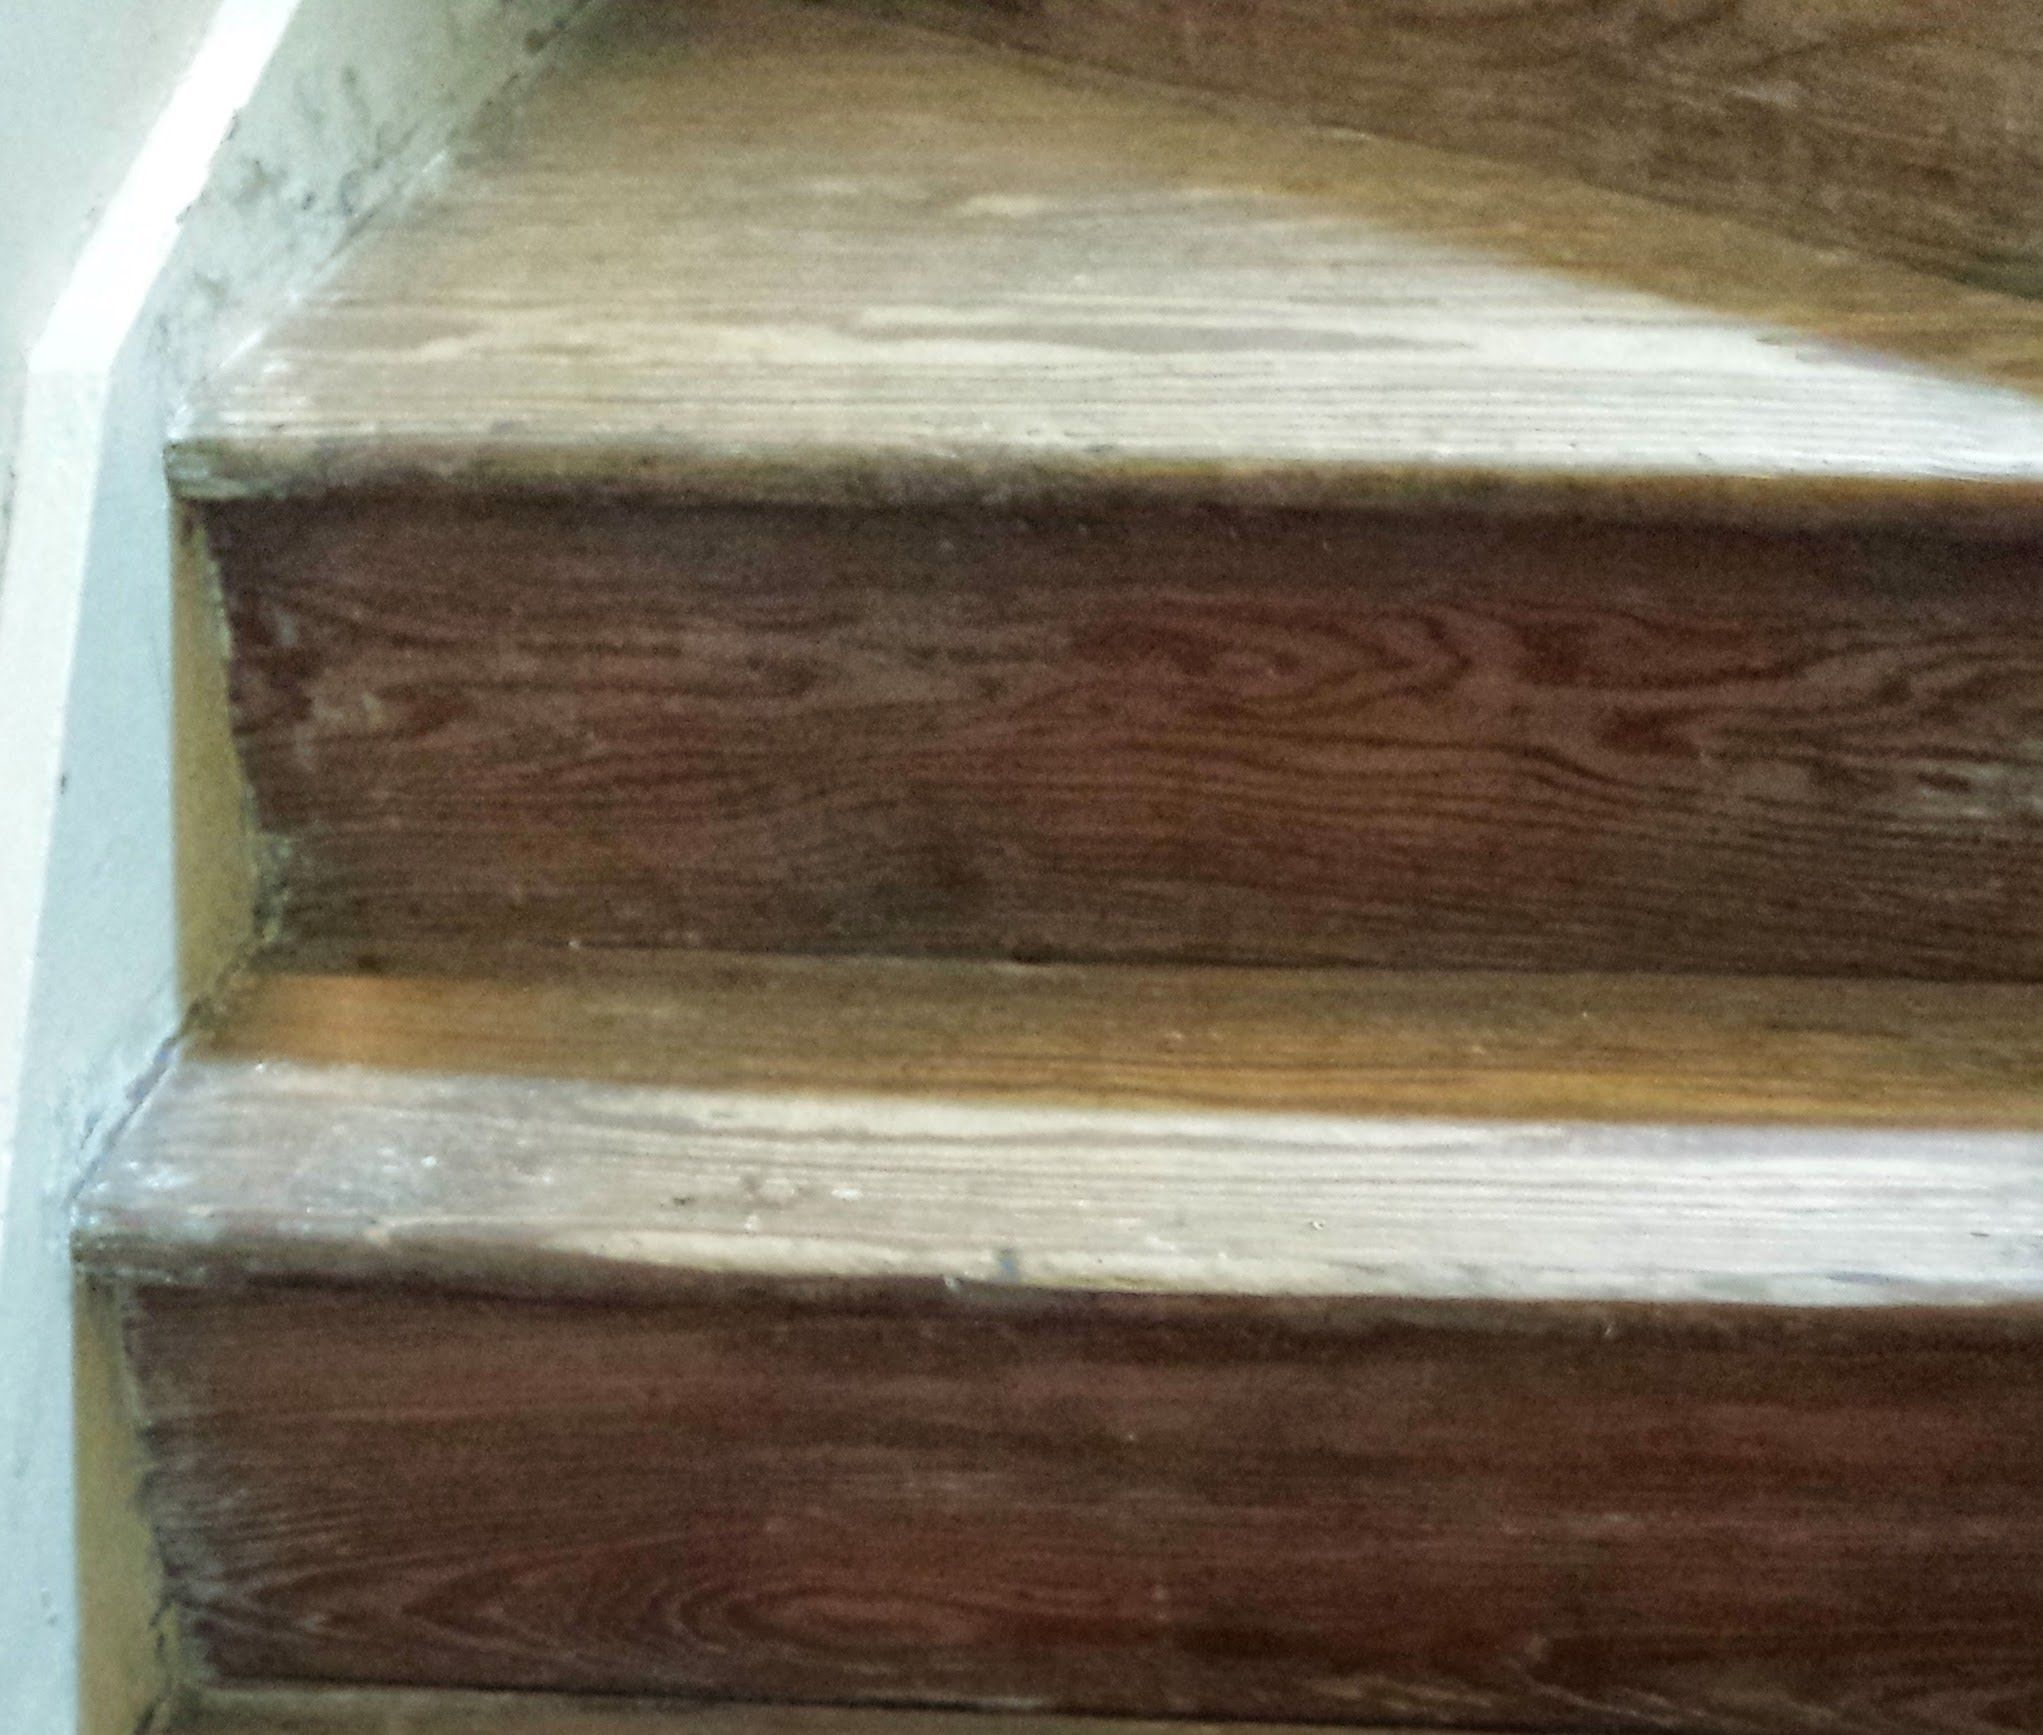 Staircase Makeover Part Ii Stripping Sanding Youtube Wood | Stripping Stairs Back To Wood | Paint Remover | Stair Risers | Stair Treads | Steps | Hardwood